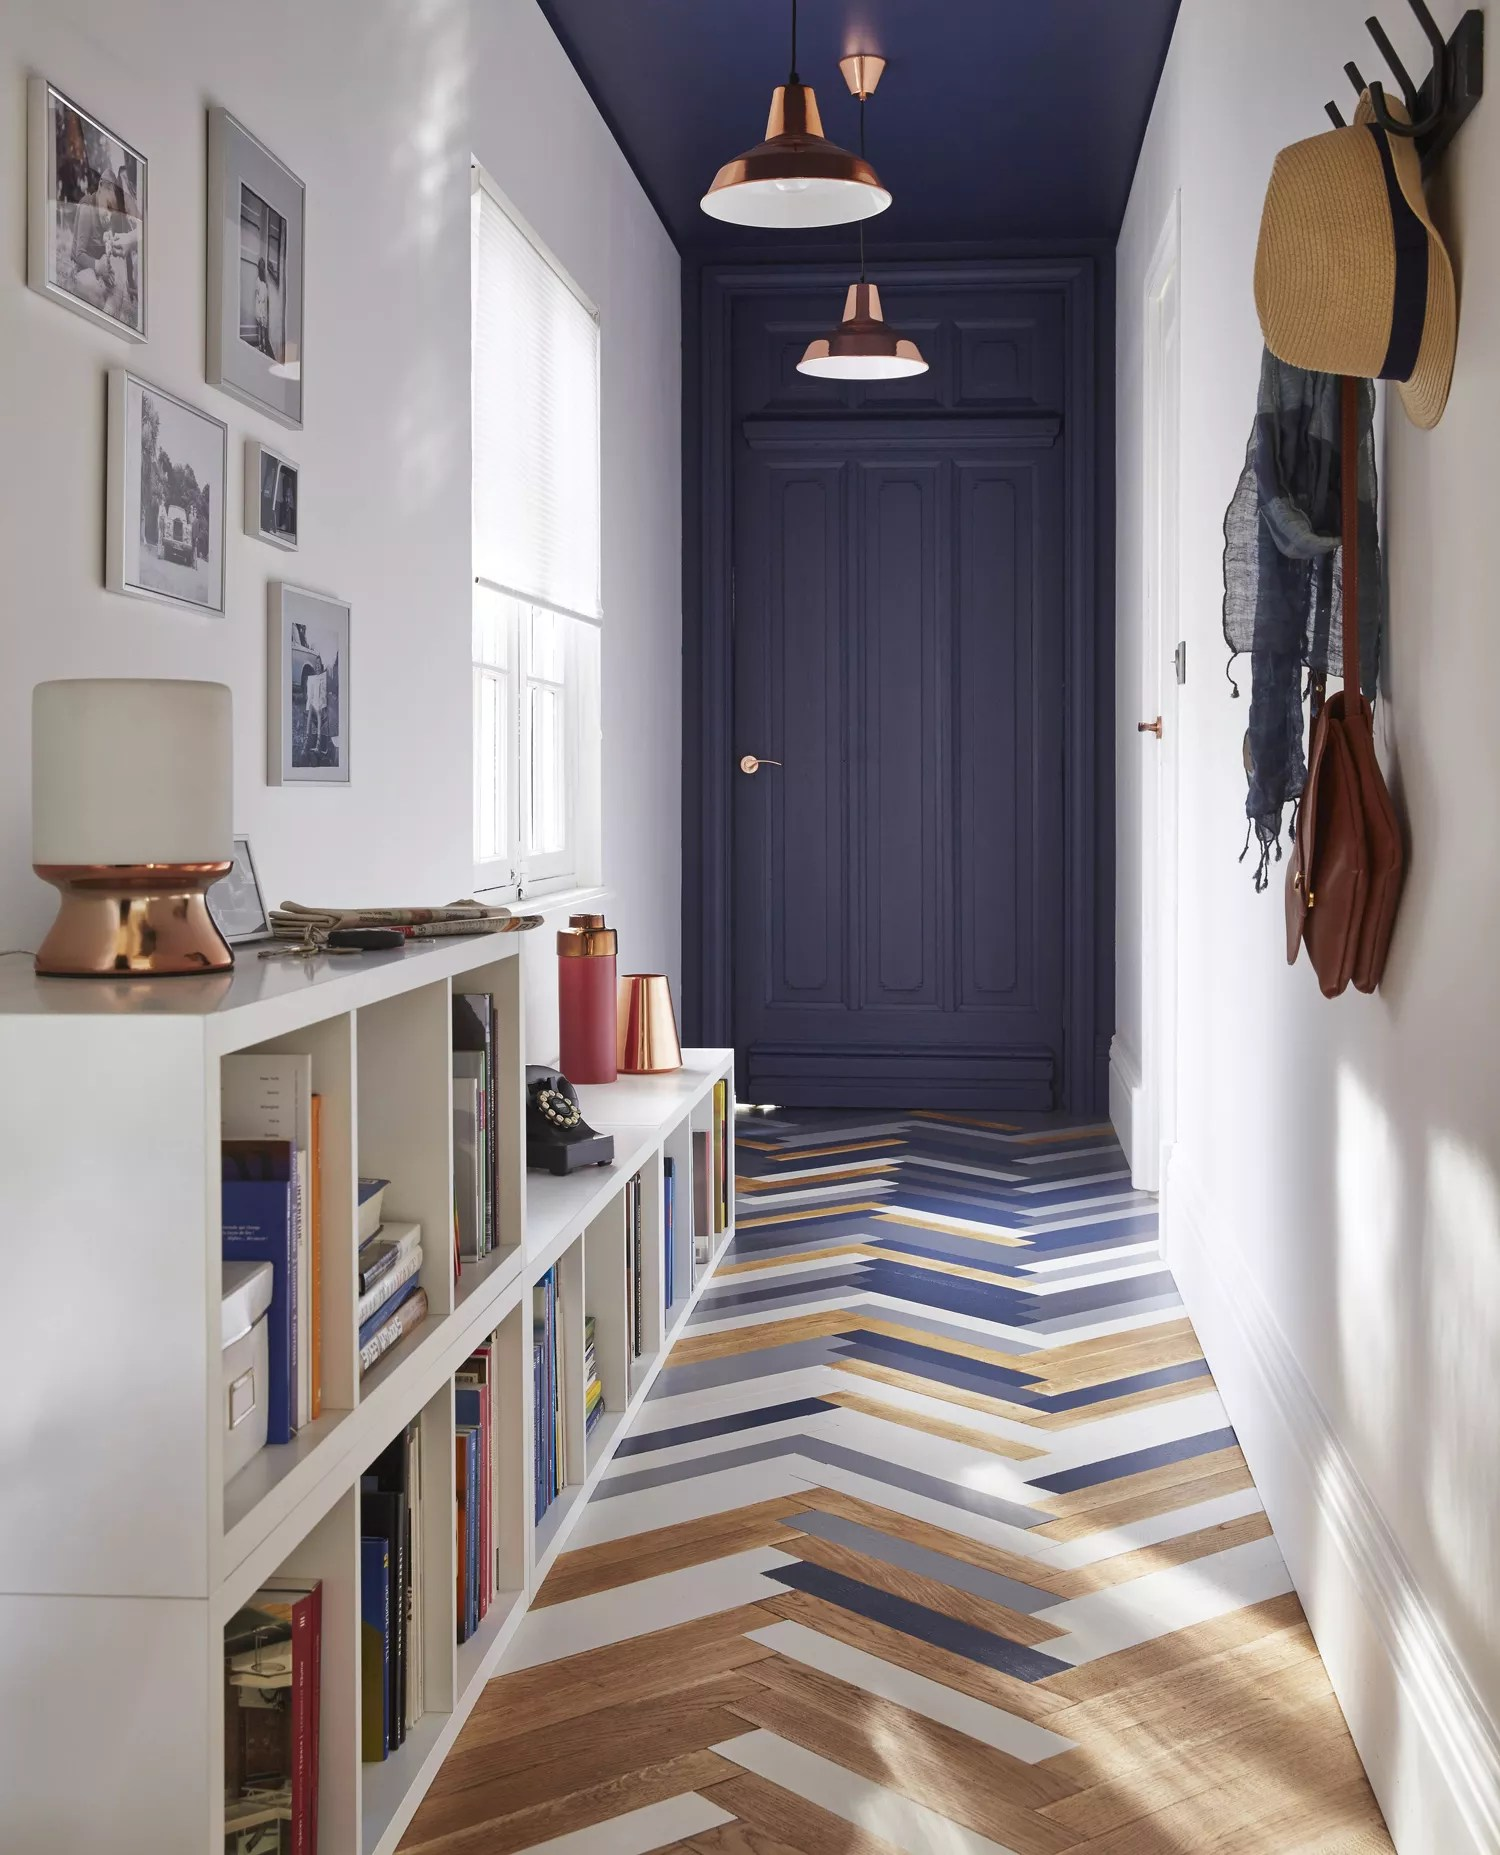 Comment Twister Son Parquet Madame Figaro